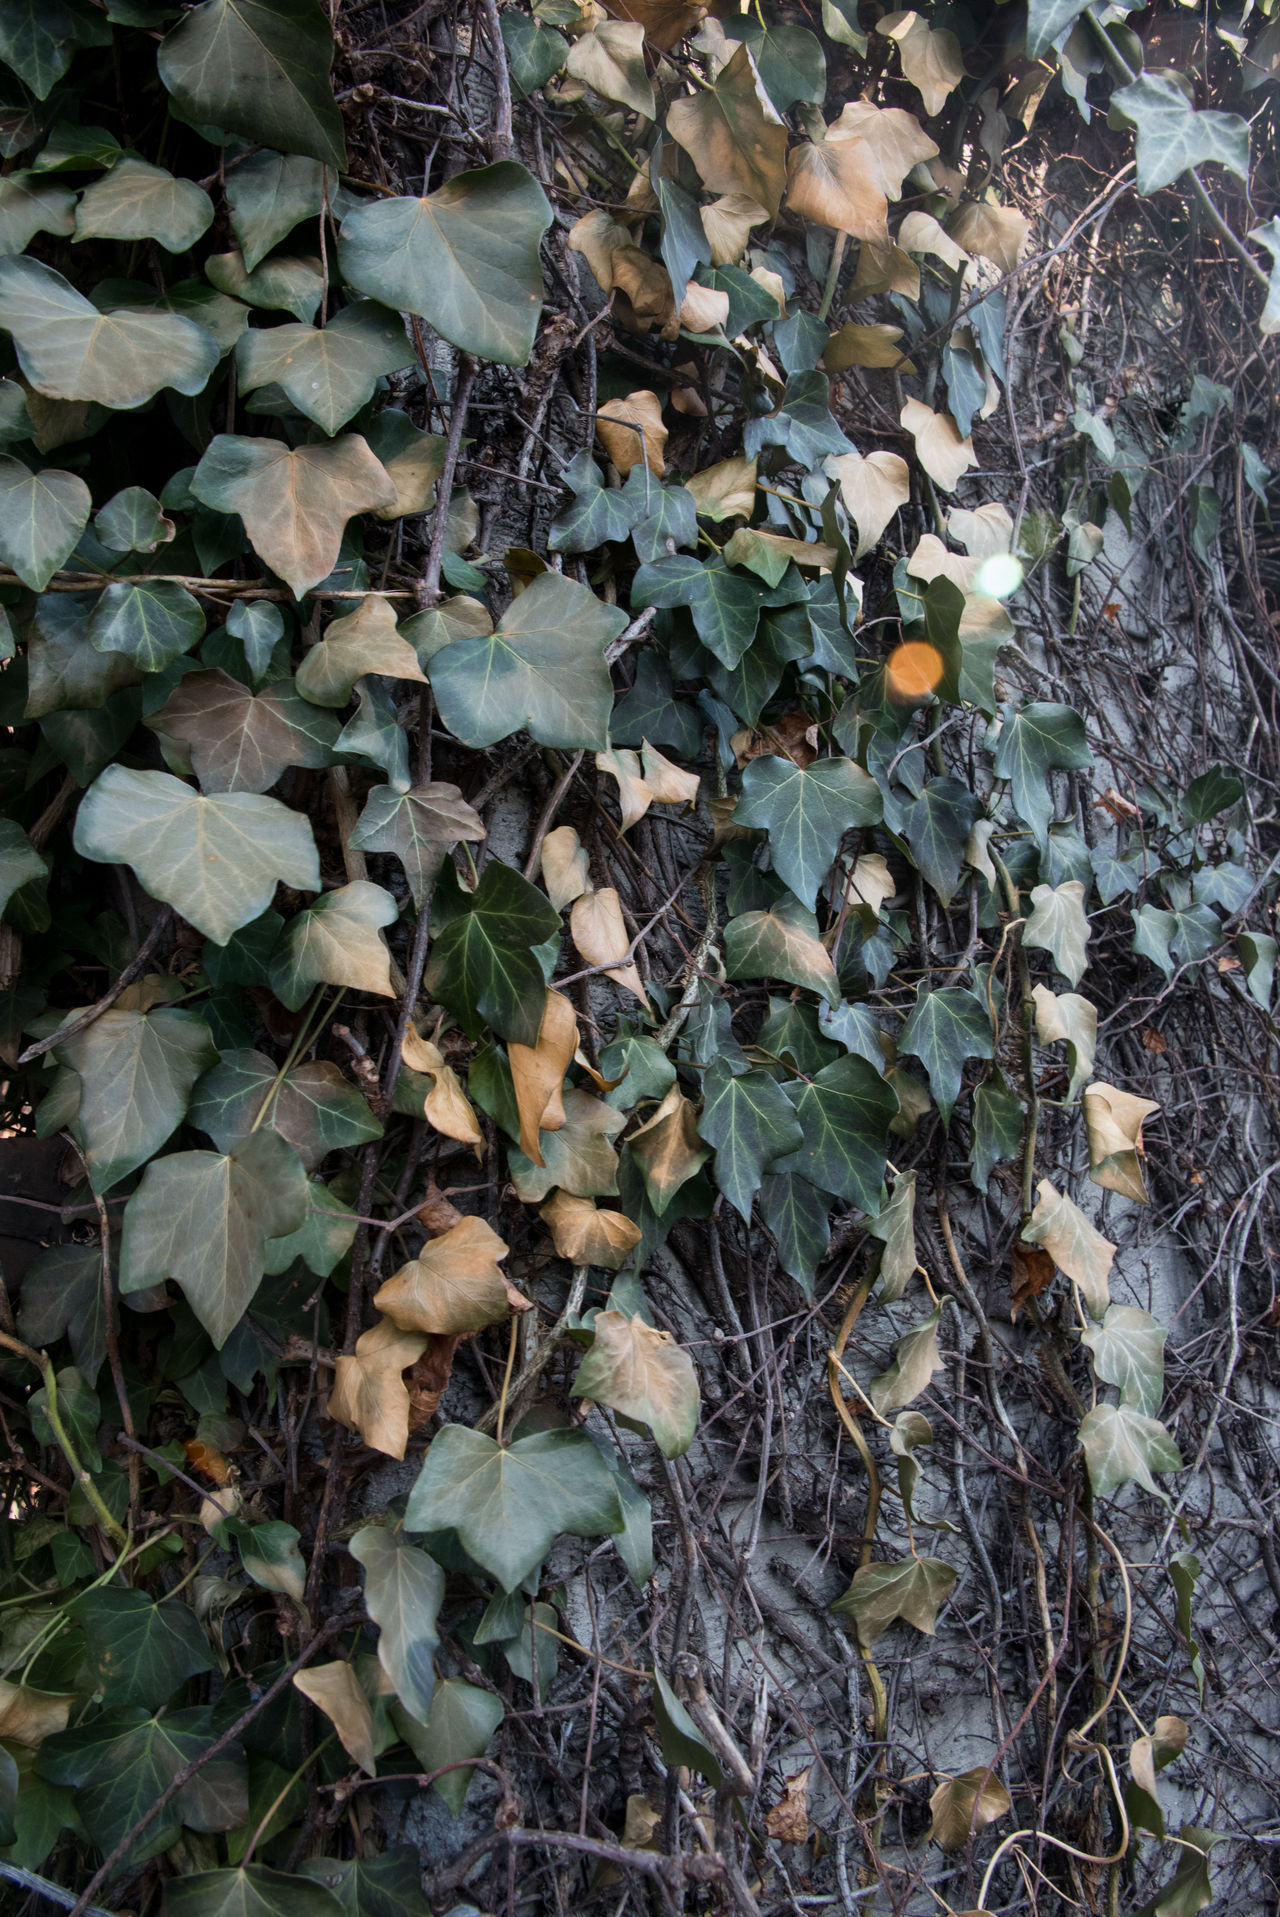 Autumn Beauty In Nature Close-up Day Fragility Growth Ivy Leaf Leaves Nature No People Outdoors Plant